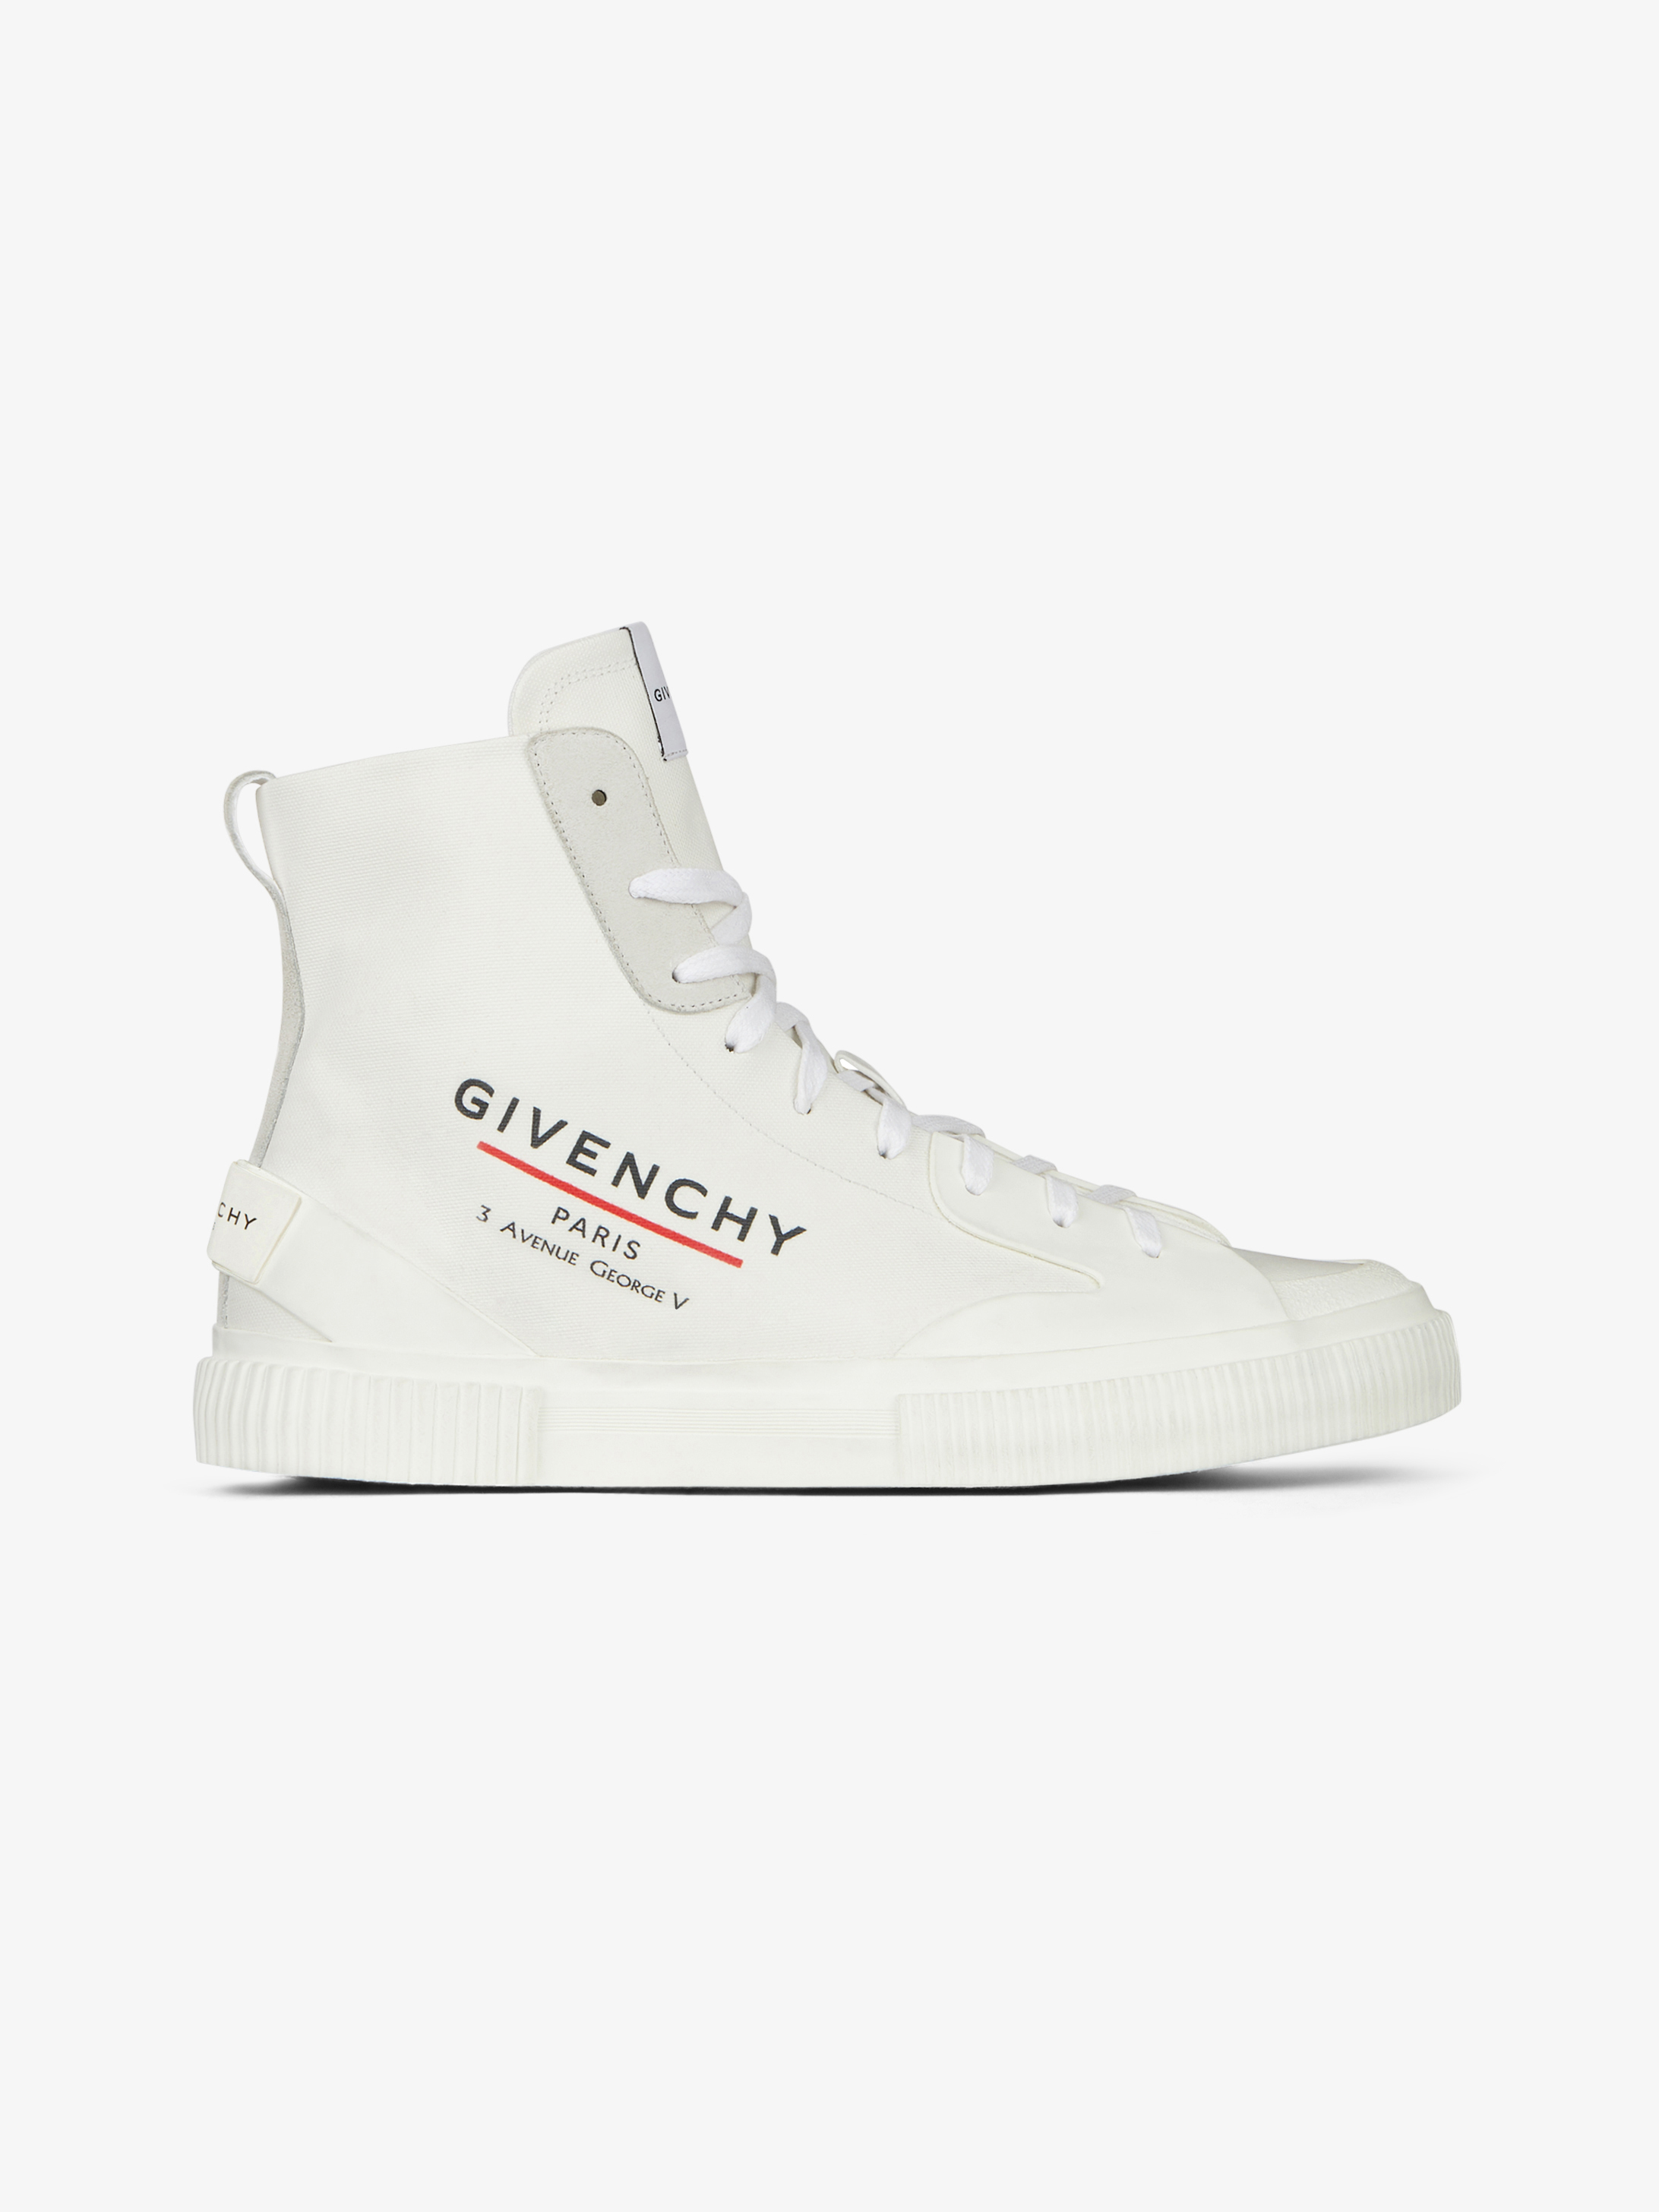 Tennis Light mid-height sneakers in GIVENCHY LABEL canvas